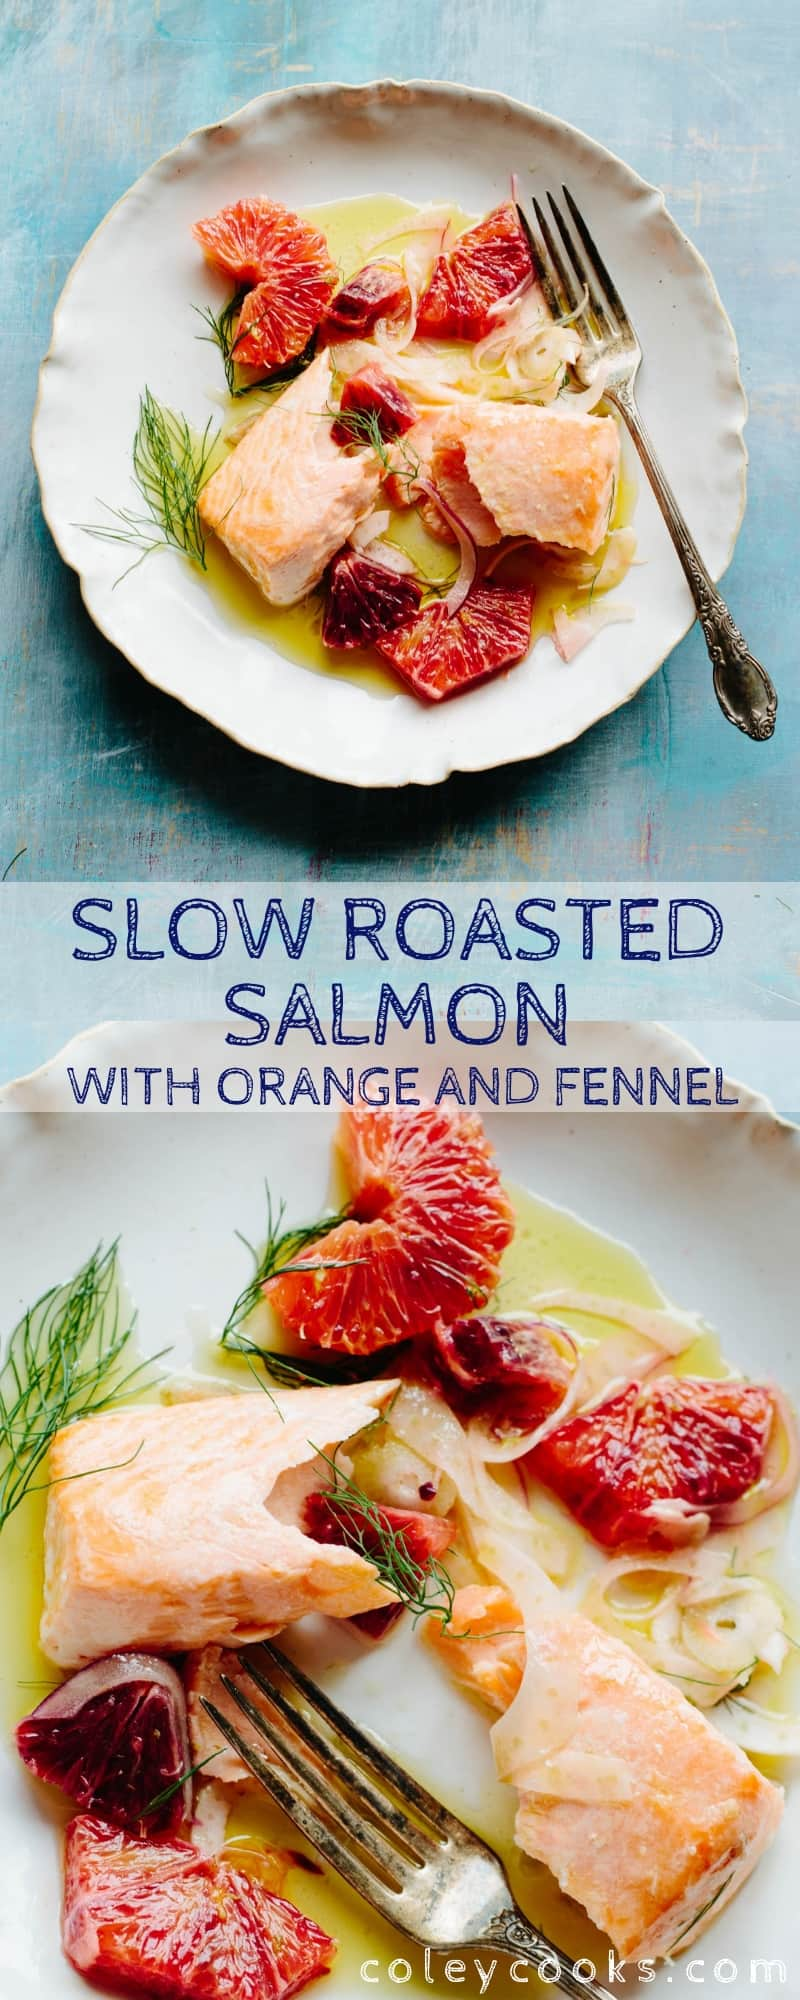 SLOW ROASTED SALMON with ORANGE + FENNEL   Succulent, buttery salmon cooked low and slow, then finished with a crisp and refreshing fennel orange salad. #easy #salmon #orange #fennel #roasted   ColeyCooks.com